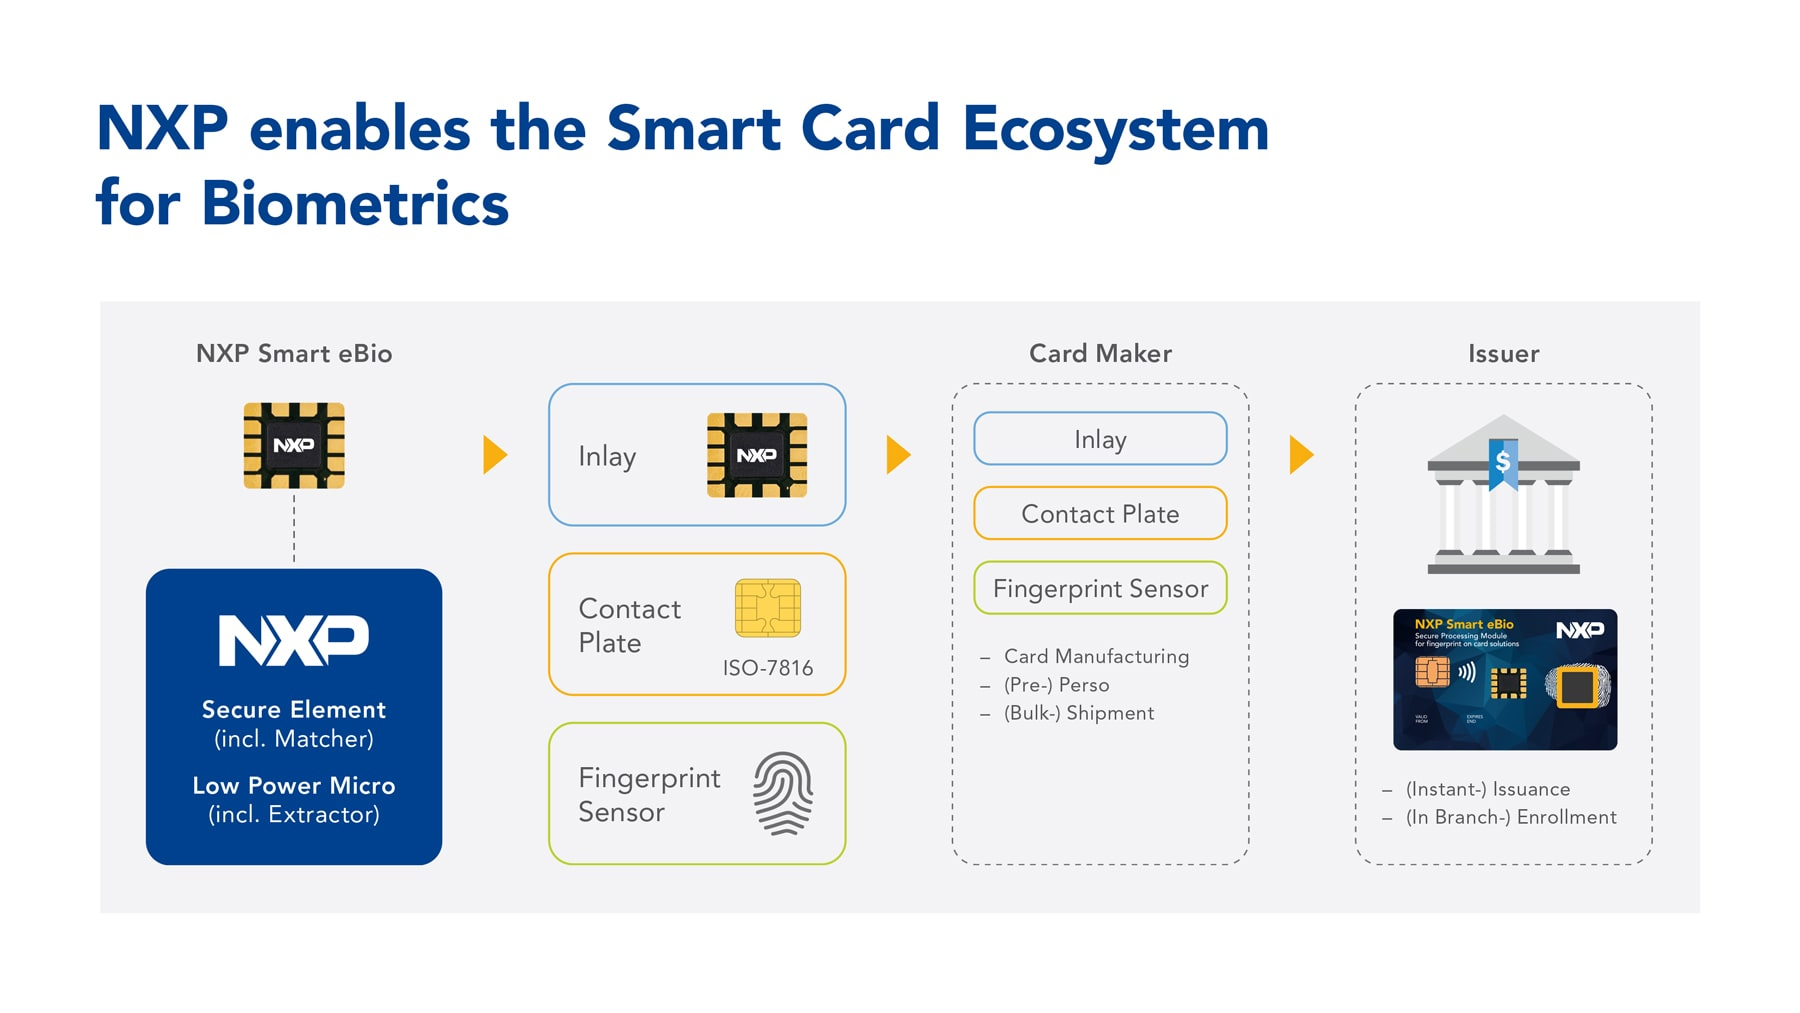 NXP Enables the Smart Card Ecosystem for Biometrics